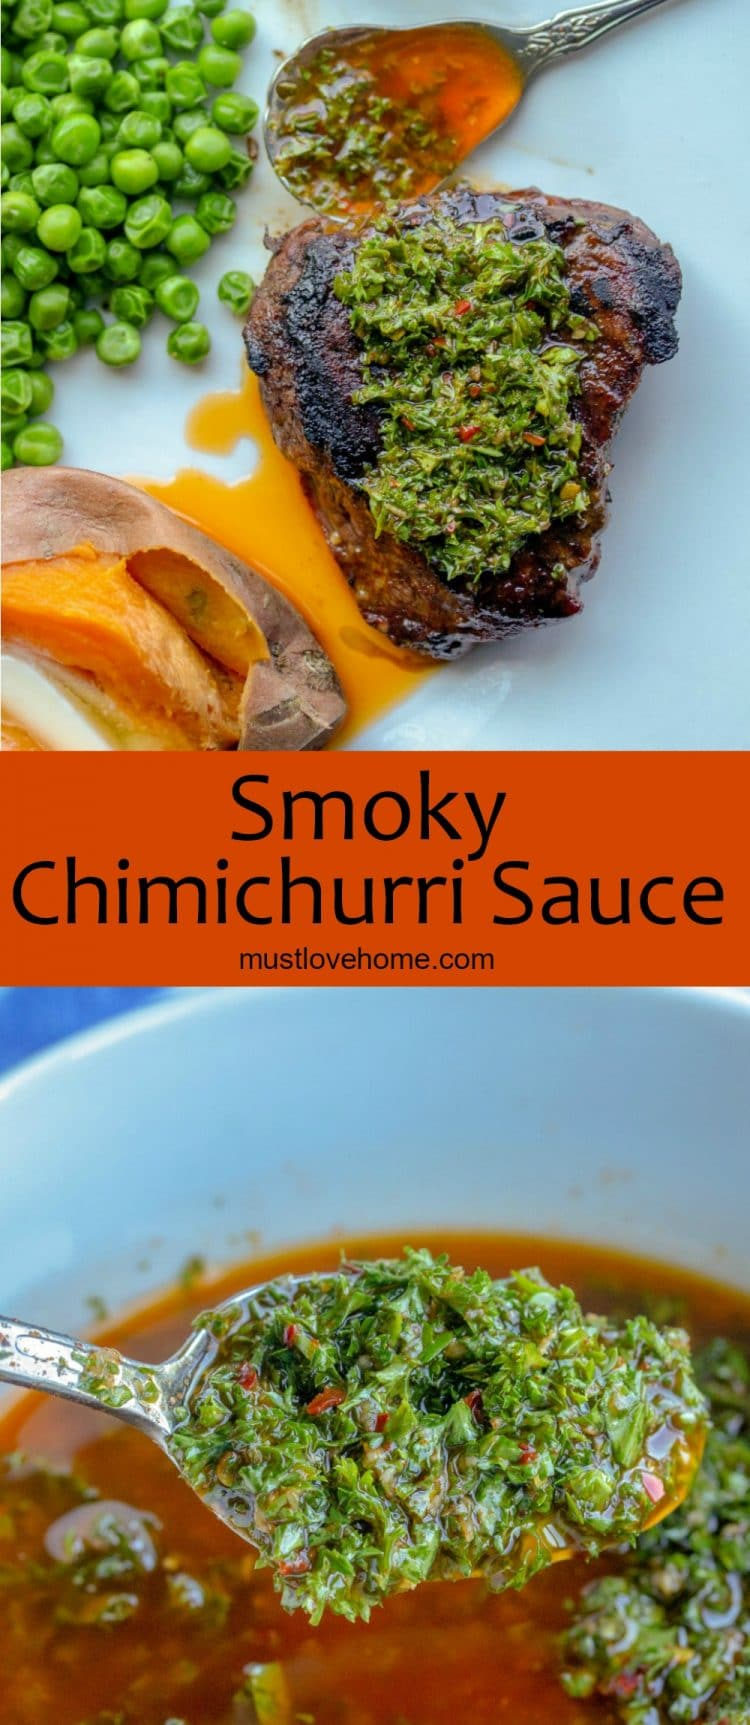 Smoky Chimichurri Sauce is the perfect way to add zesty, smoked flavor to your beef, chicken or pork! Made with fresh parsley, smoked paprika, oregano, garlic, red pepper flakes, olive oil and vinegar, it is a quick and tasty addition to any meal.